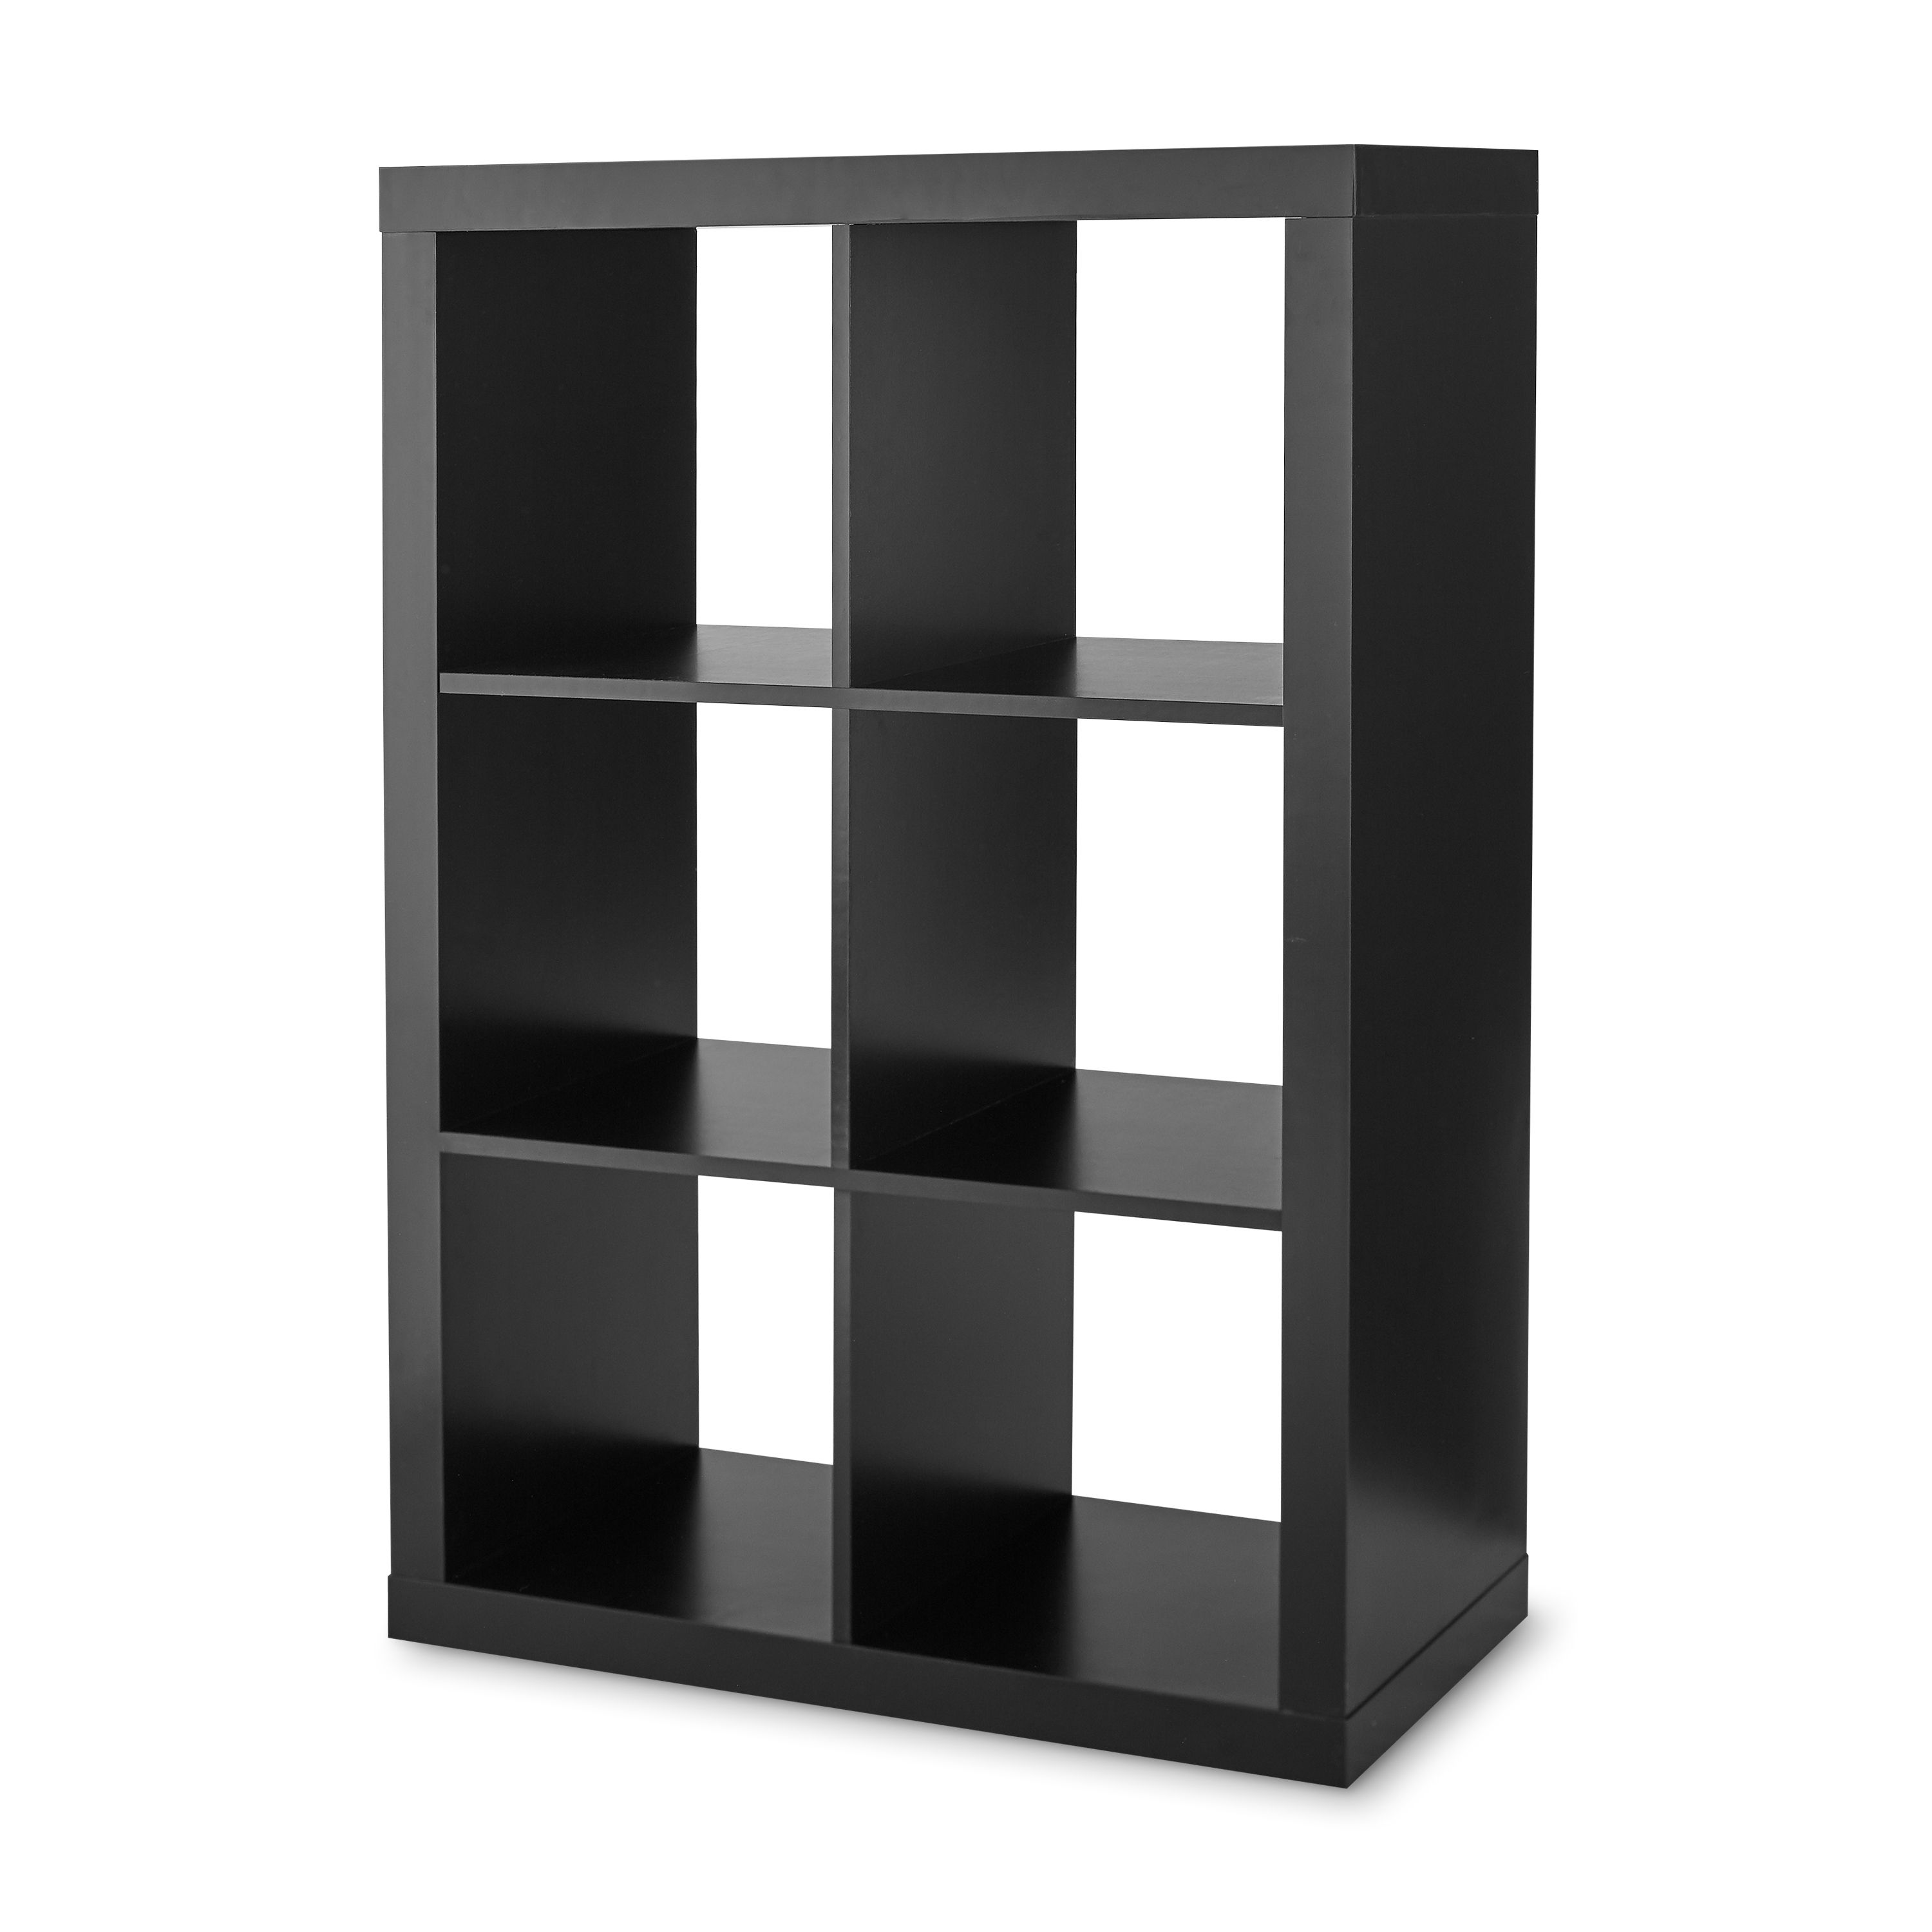 Free 2 Day Shipping Buy Better Homes Gardens 6 Cube Storage Organizer Black At Walmart Com In 2020 Cube Storage Cube Storage Shelves Cube Organizer